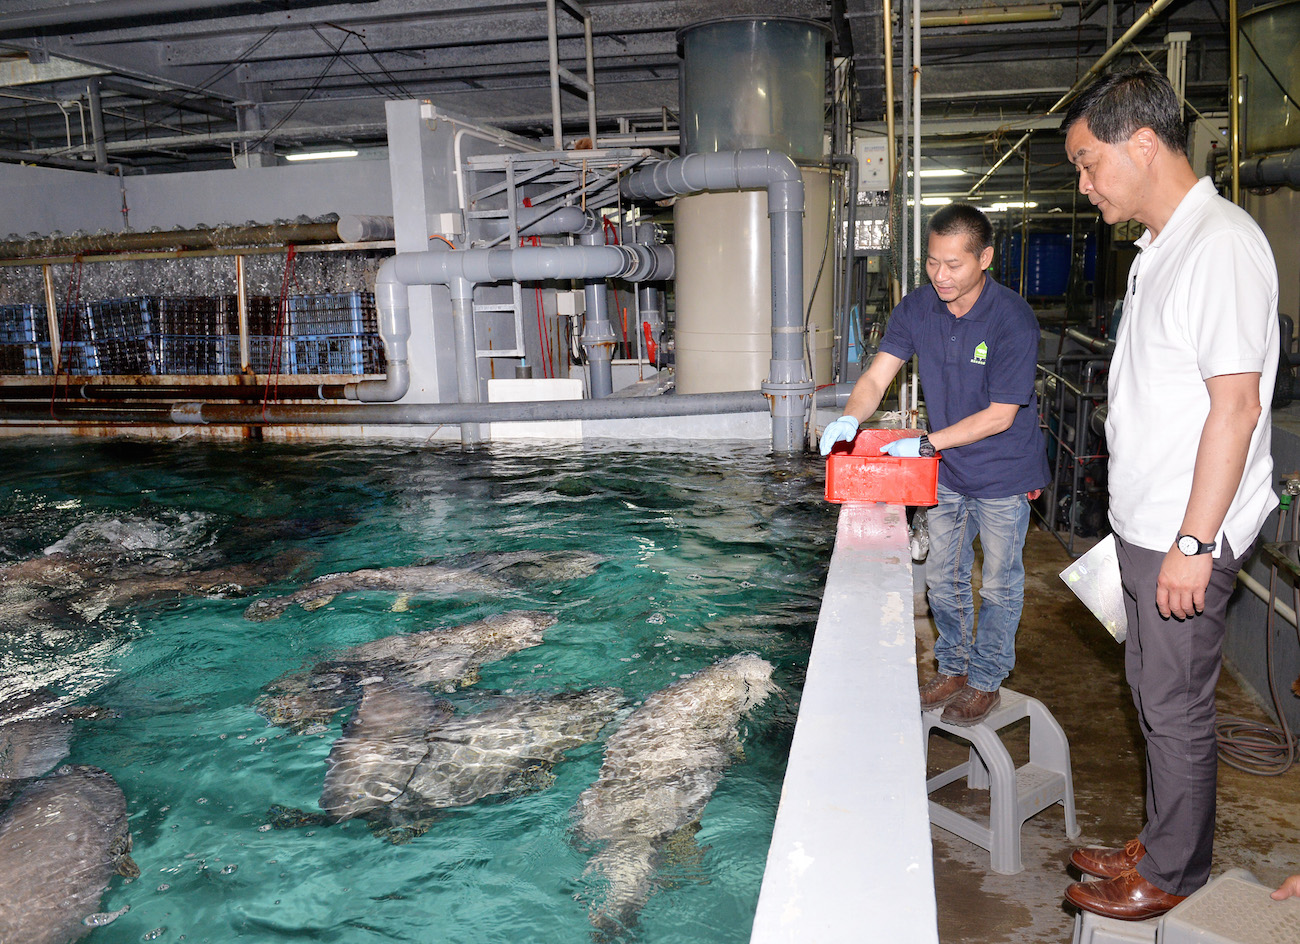 CY Visits Grouper Farms in Hong Kong